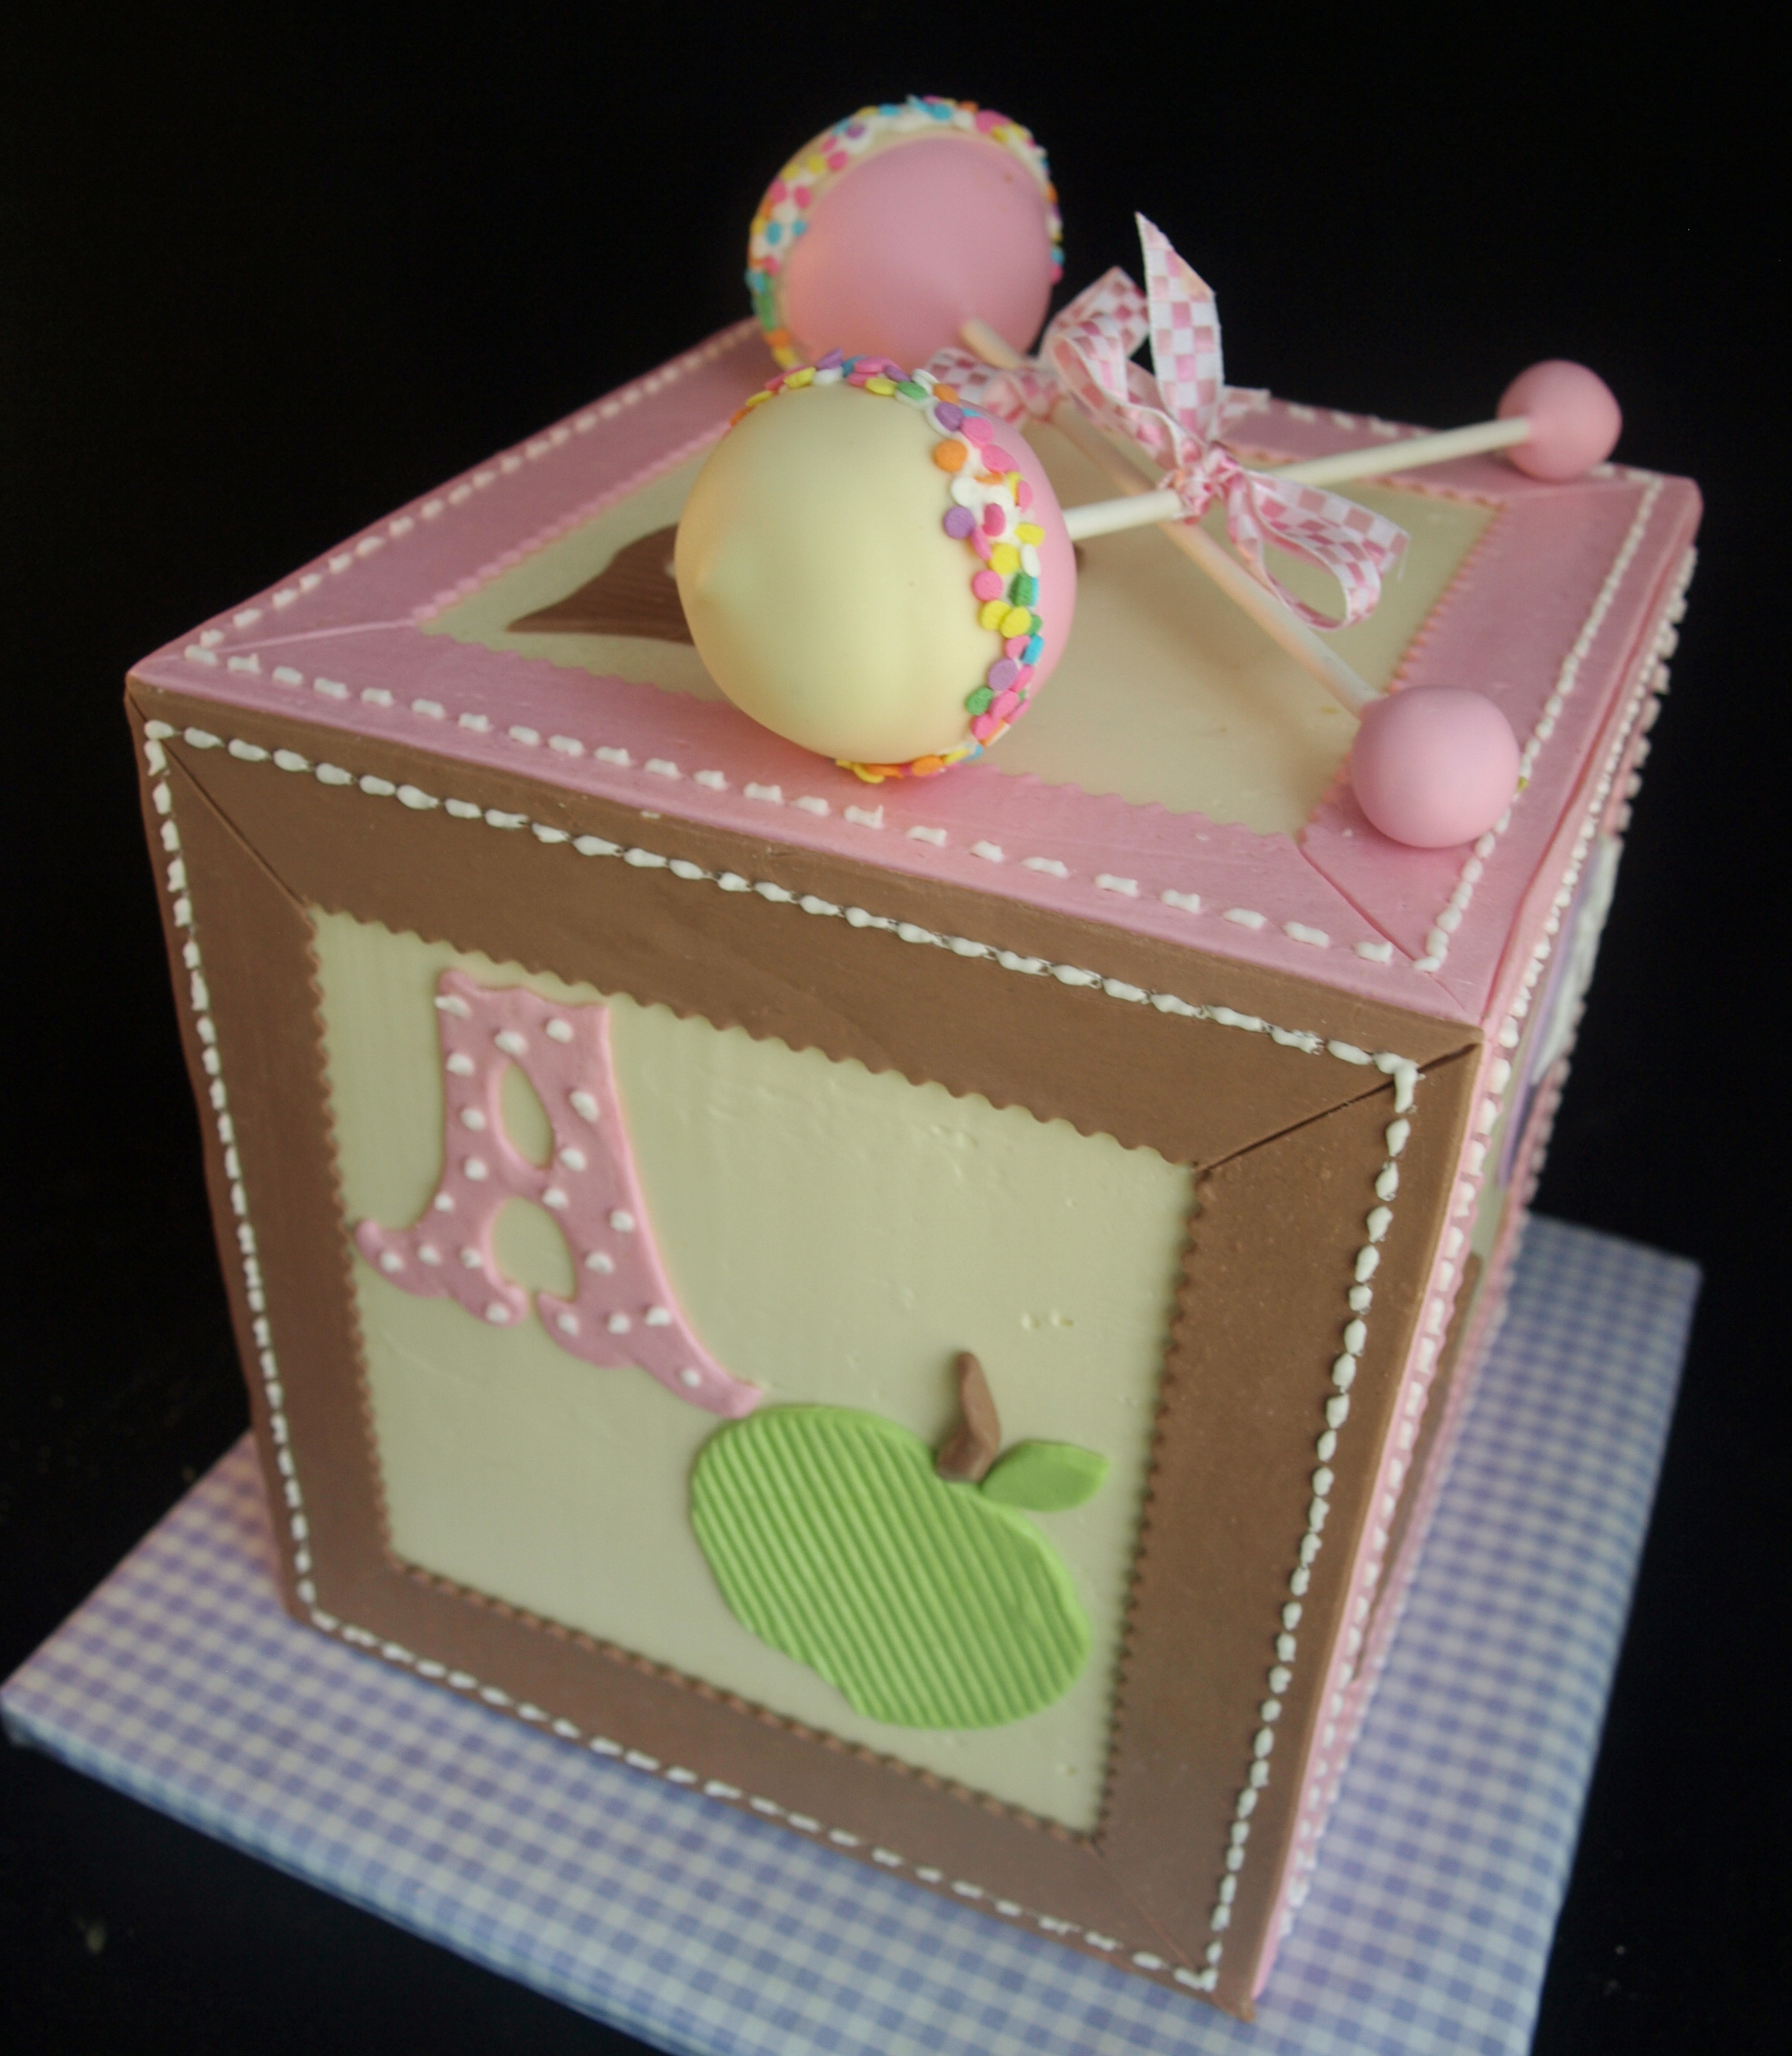 Baby Shower Cakes - Laurie Clarke Cakes, Portland Oregon